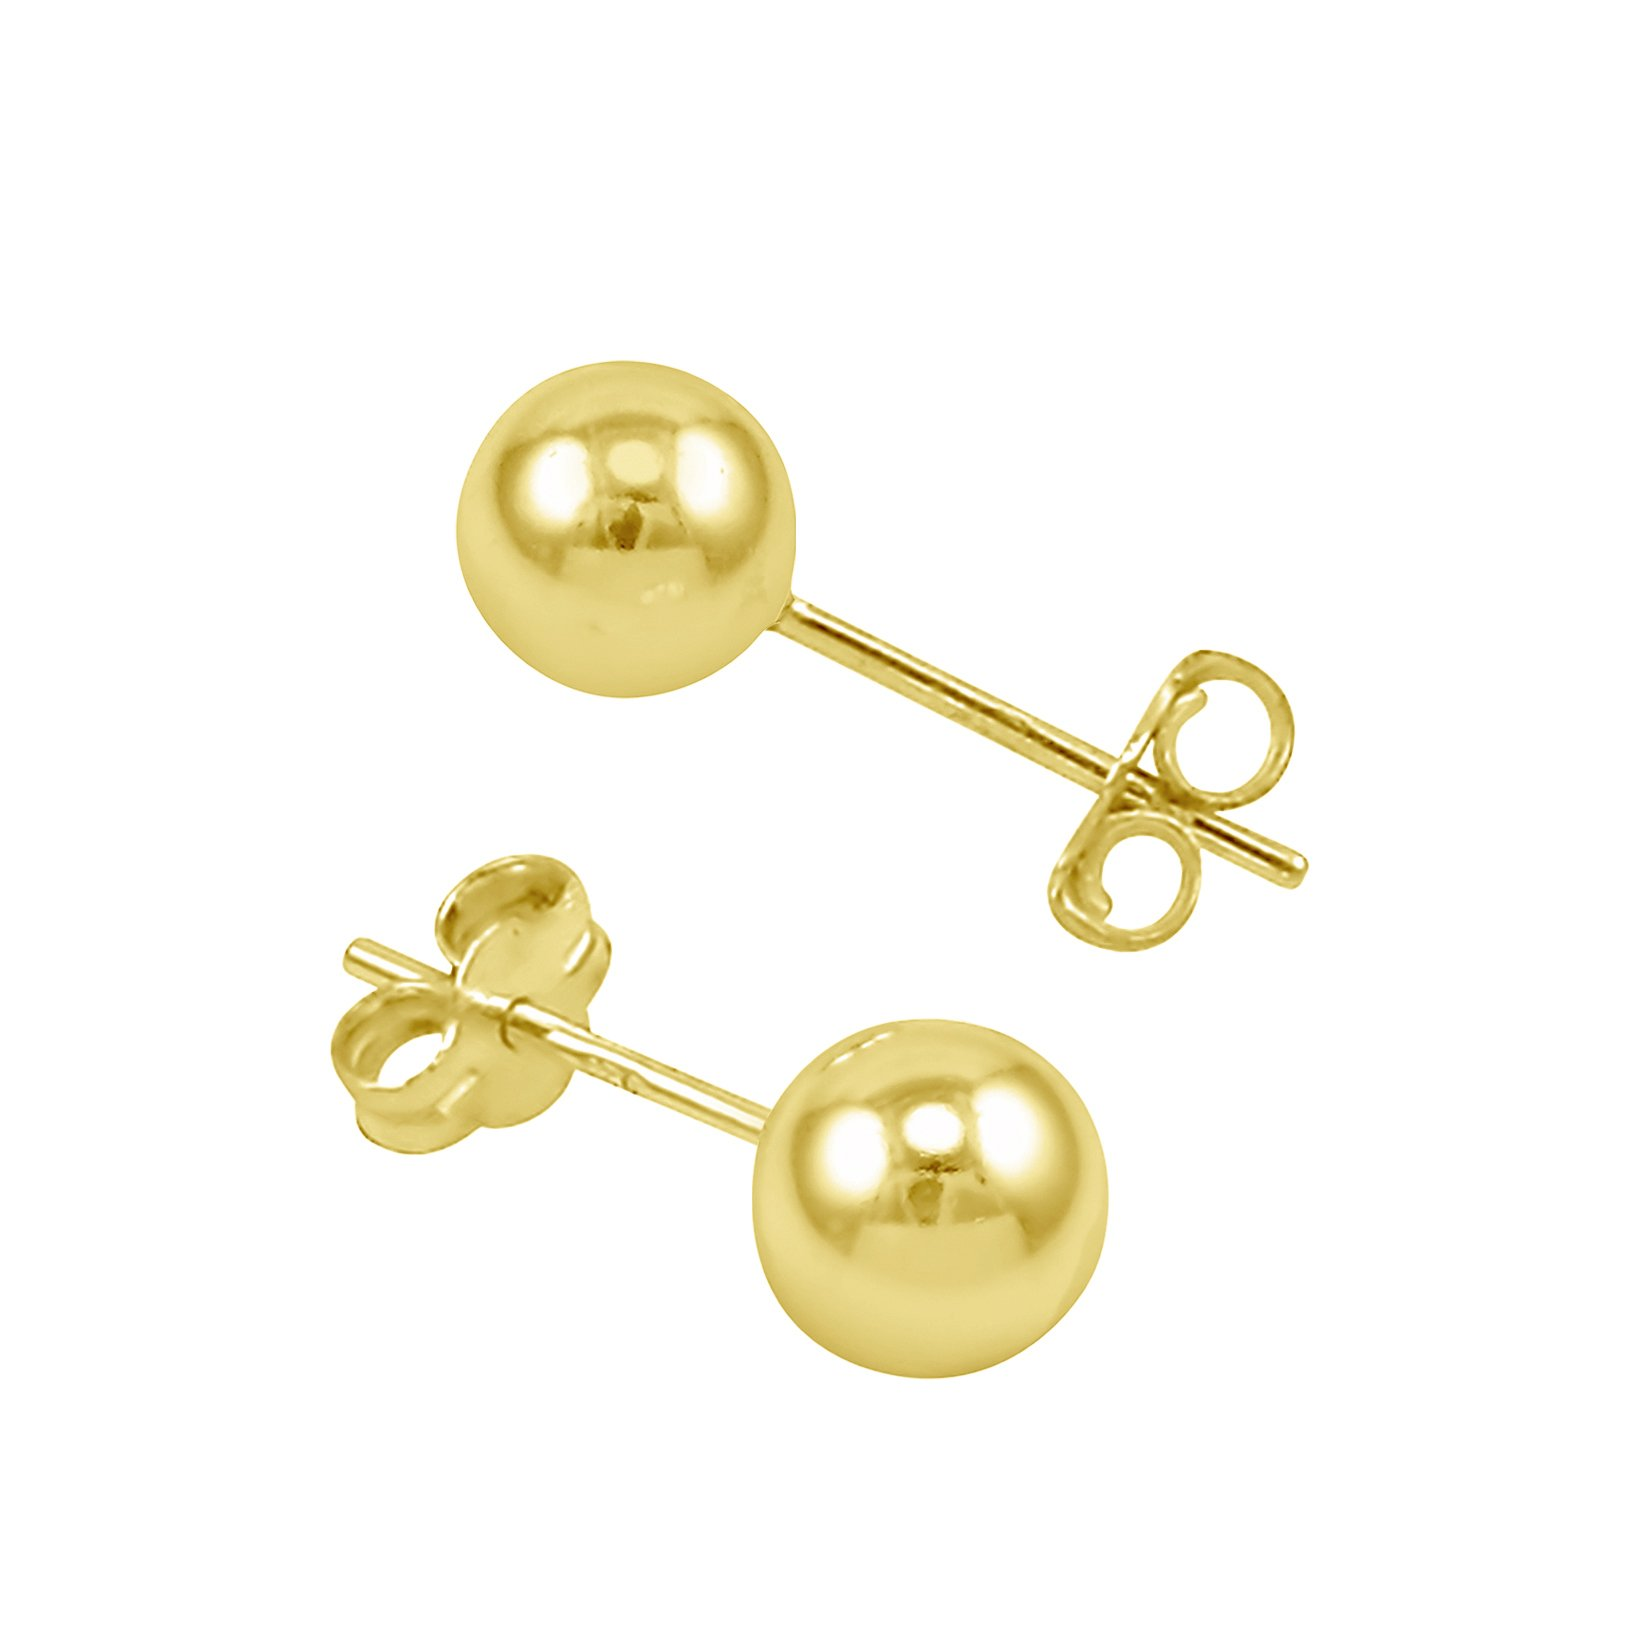 14k High Polished Yellow Gold Ball Stud Earrings With Butterfly & Free Box - 4mm